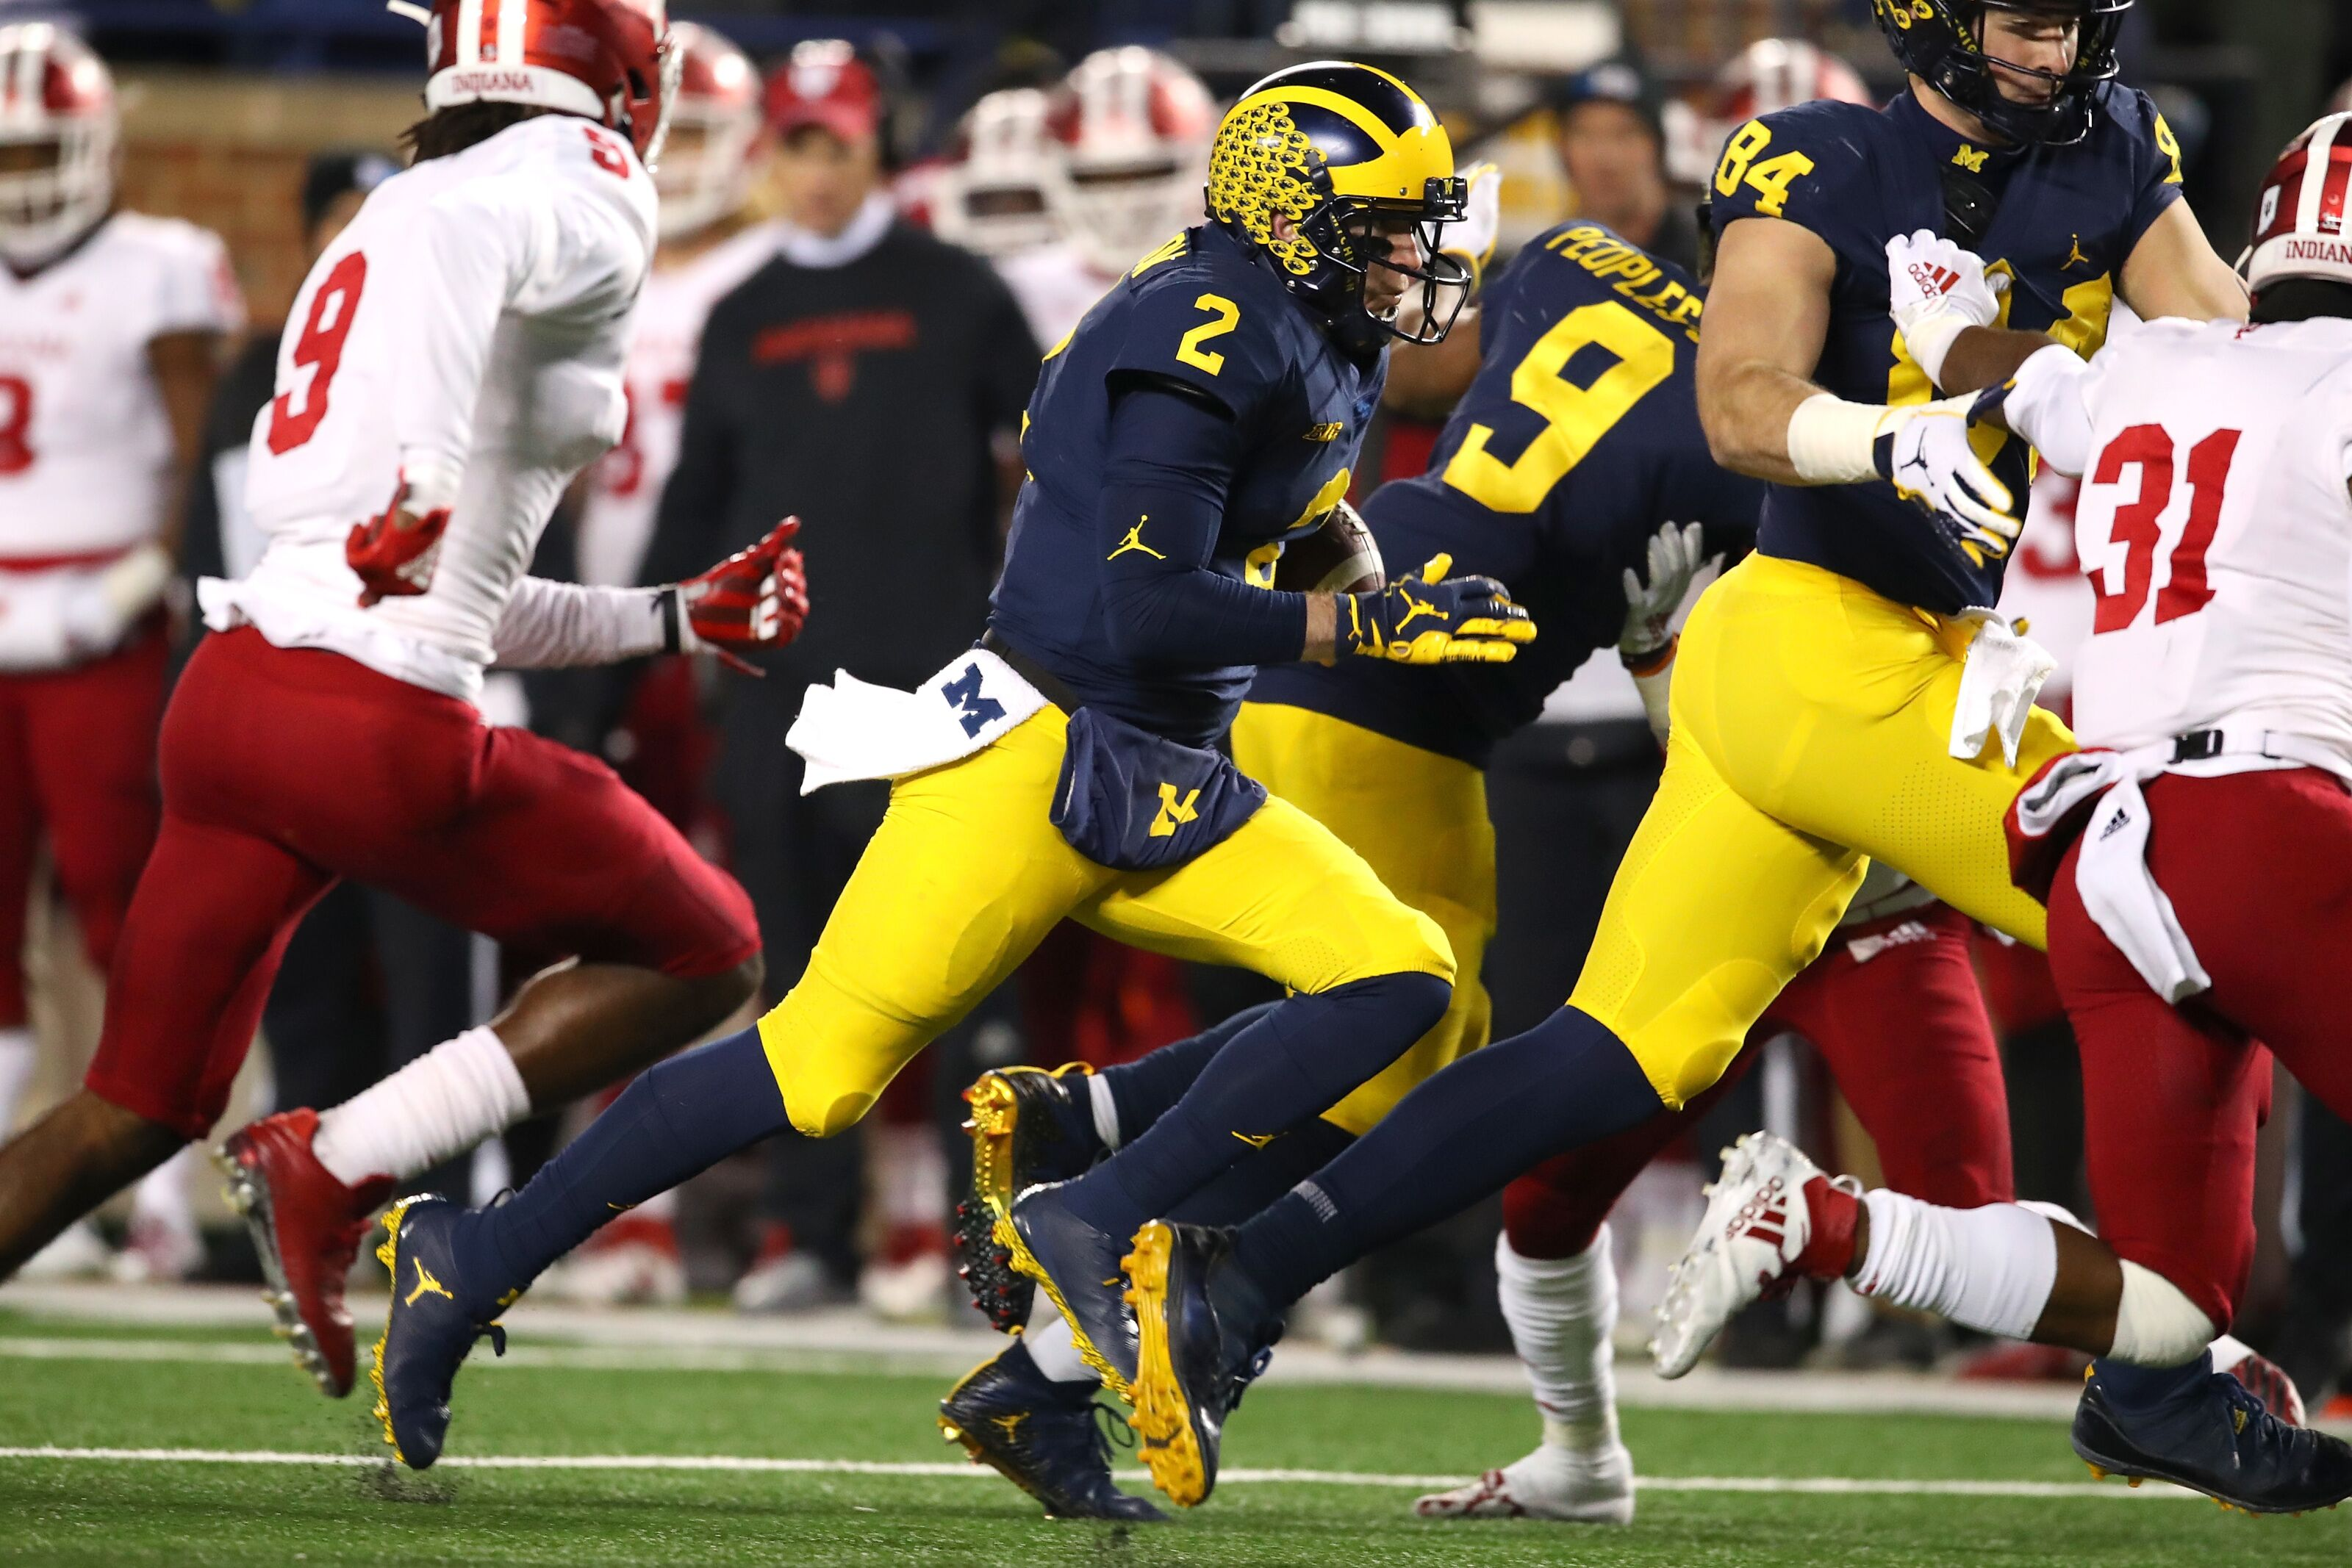 a1a62b77448 Michigan Football  3 Wolverines rank among top 2020 draft prospects